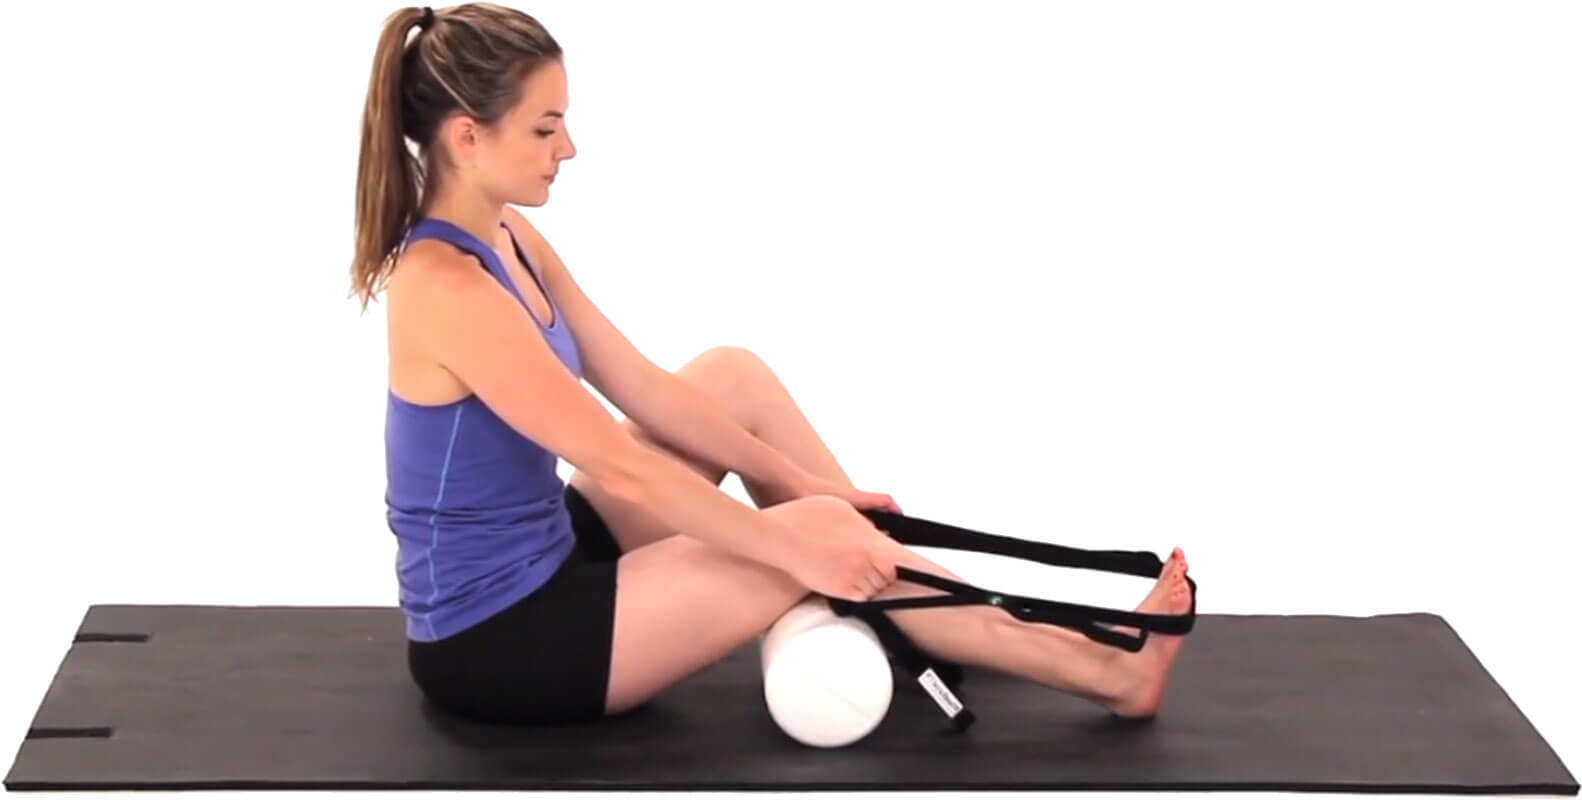 Home Exercise Program East Patchogue & Riverhead, NY